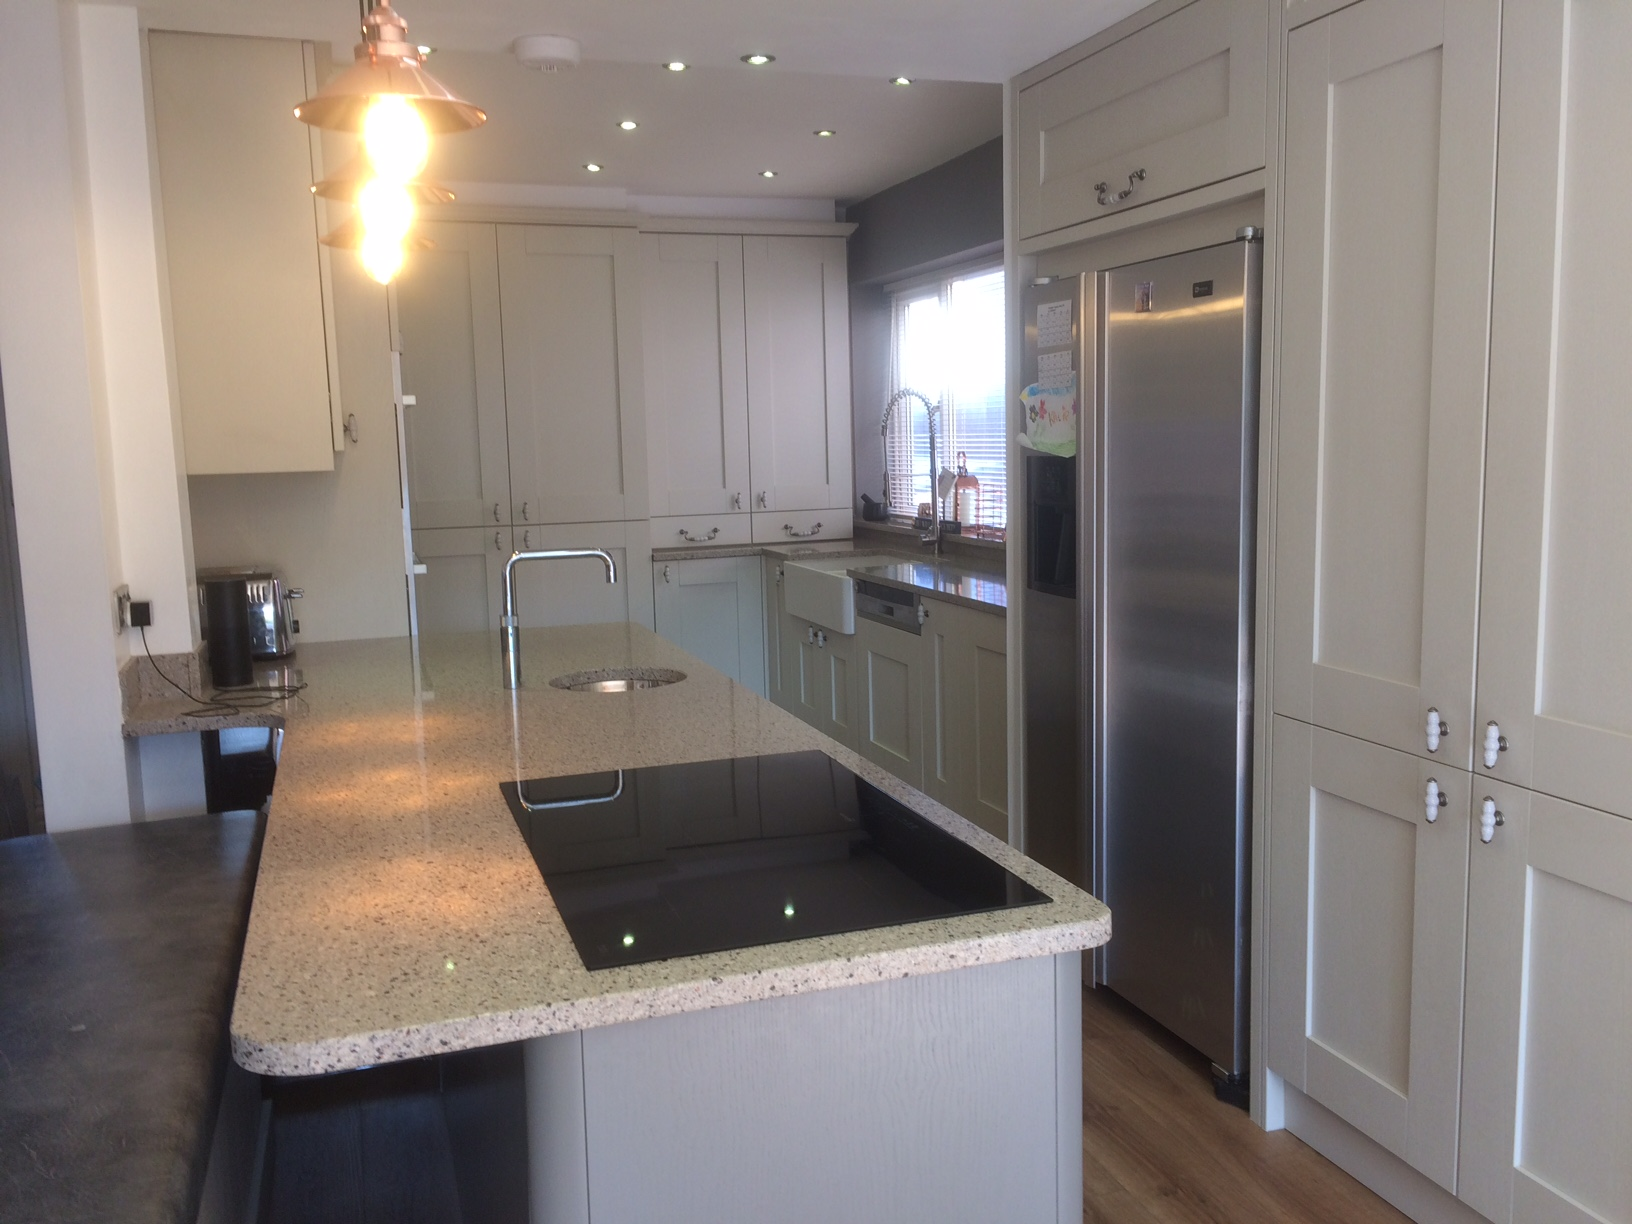 Whole kitchen completed August 2018